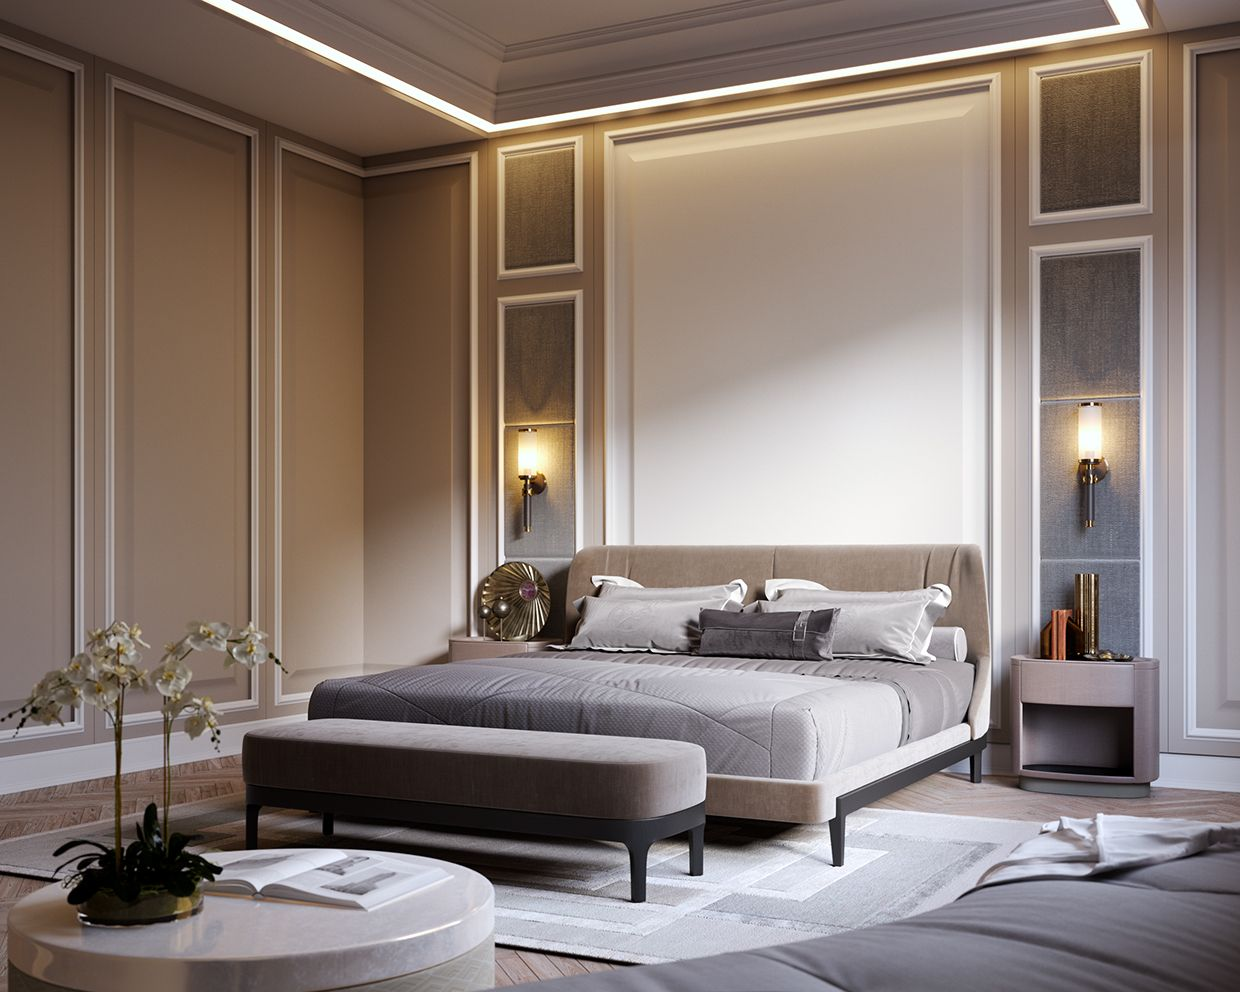 luxury pure simple phòng ngủ sang trọng thiết kế on modern luxurious bedroom ideas decoration some inspiration to advise you in decorating your room id=52974